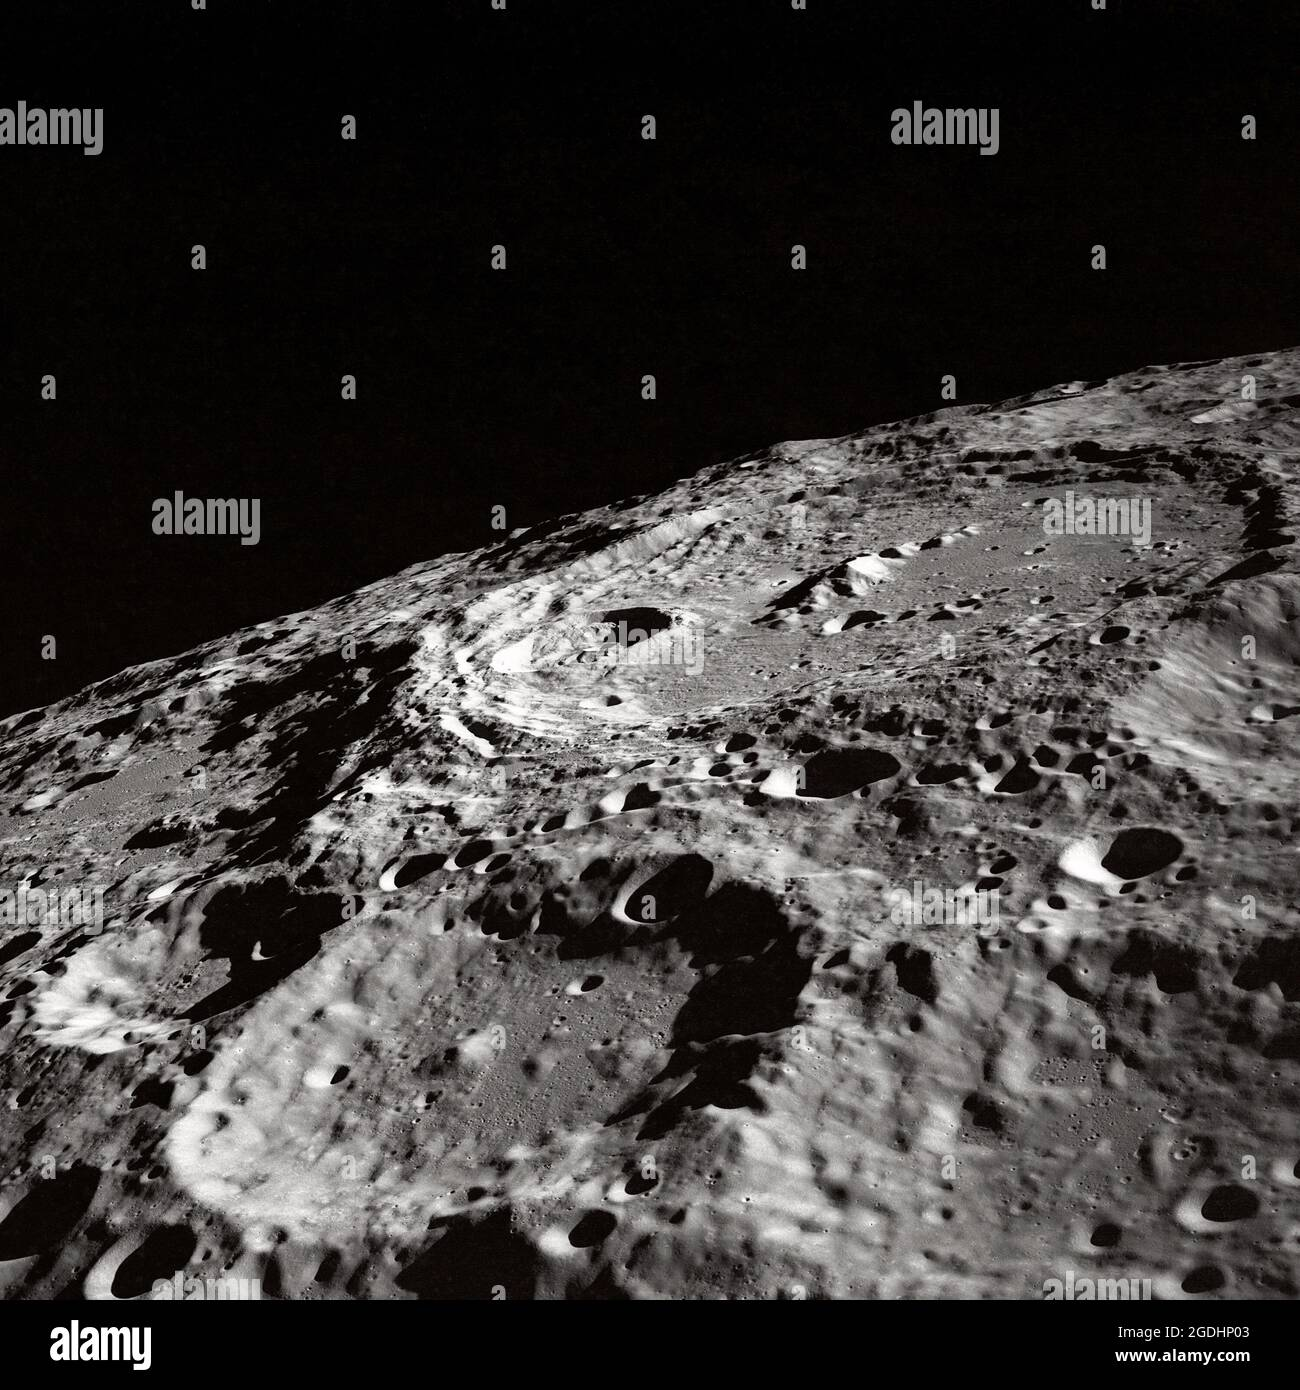 Lunar Surface Crater High Resolution Stock Photography and Images ...